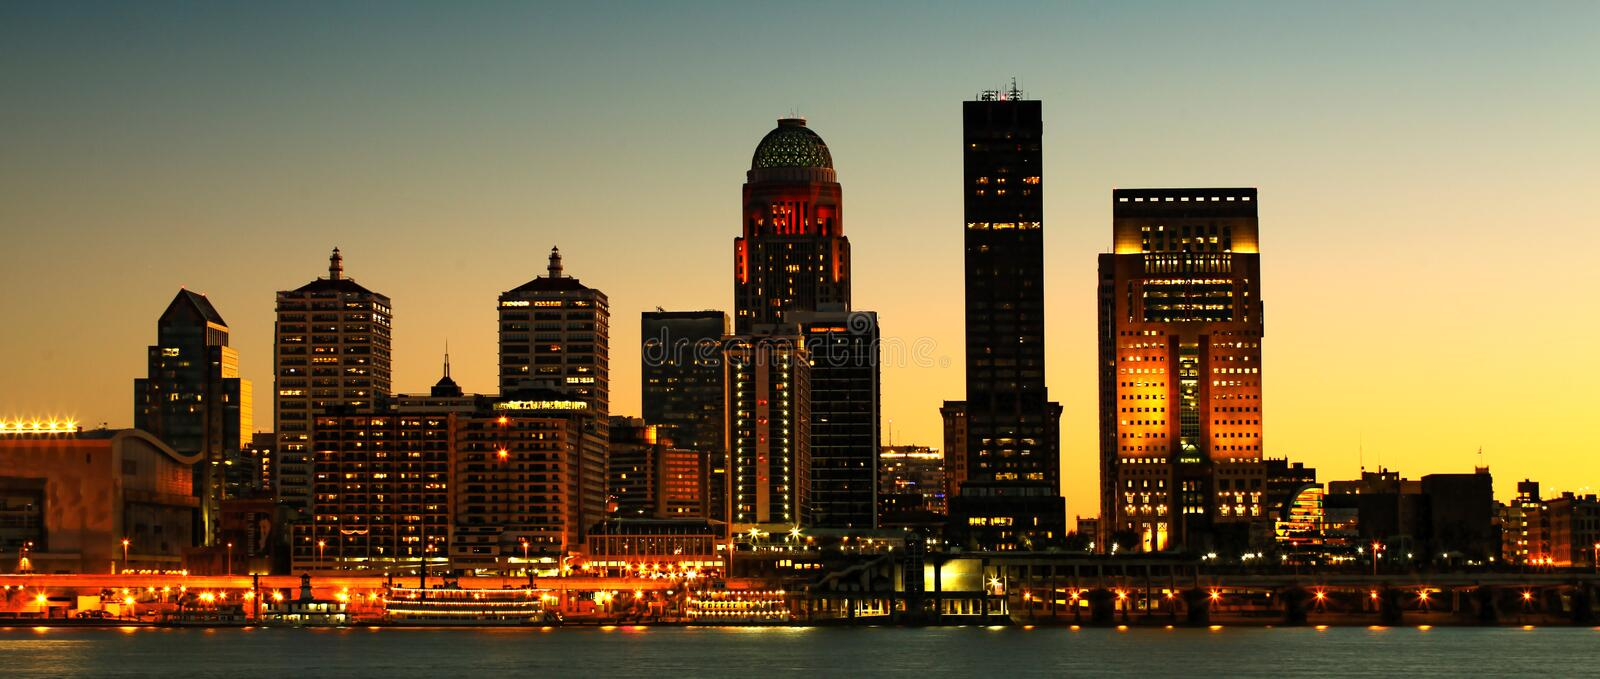 Panorama of Louisville night city center across the Ohio River stock photography